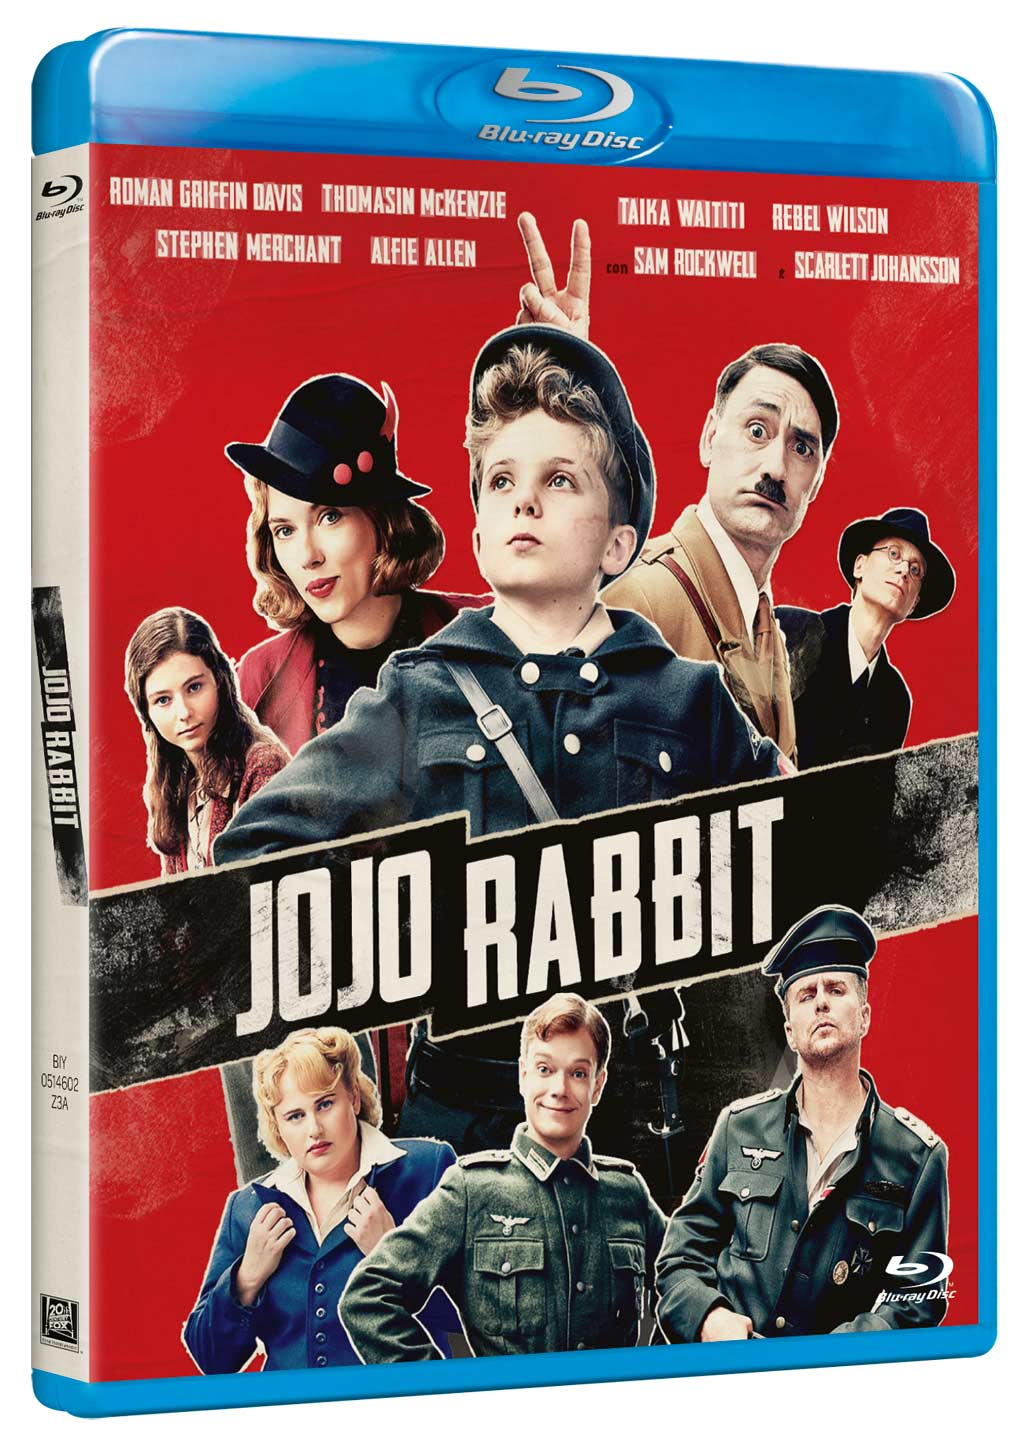 JOJO RABBIT - BLU RAY